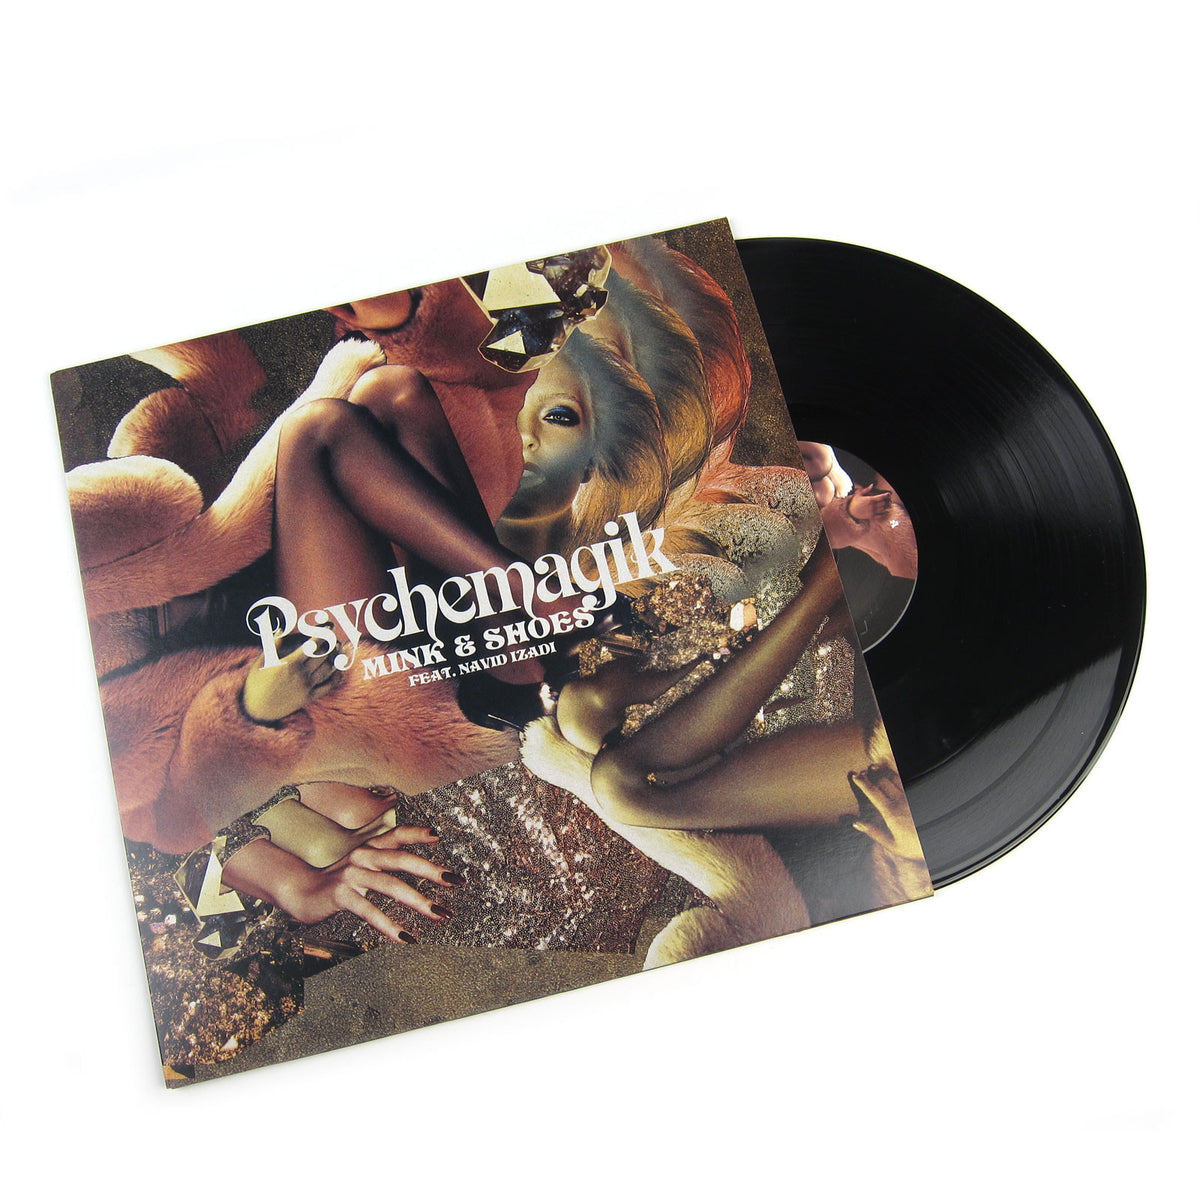 Psychemagik: Mink & Shoes Vinyl 12""